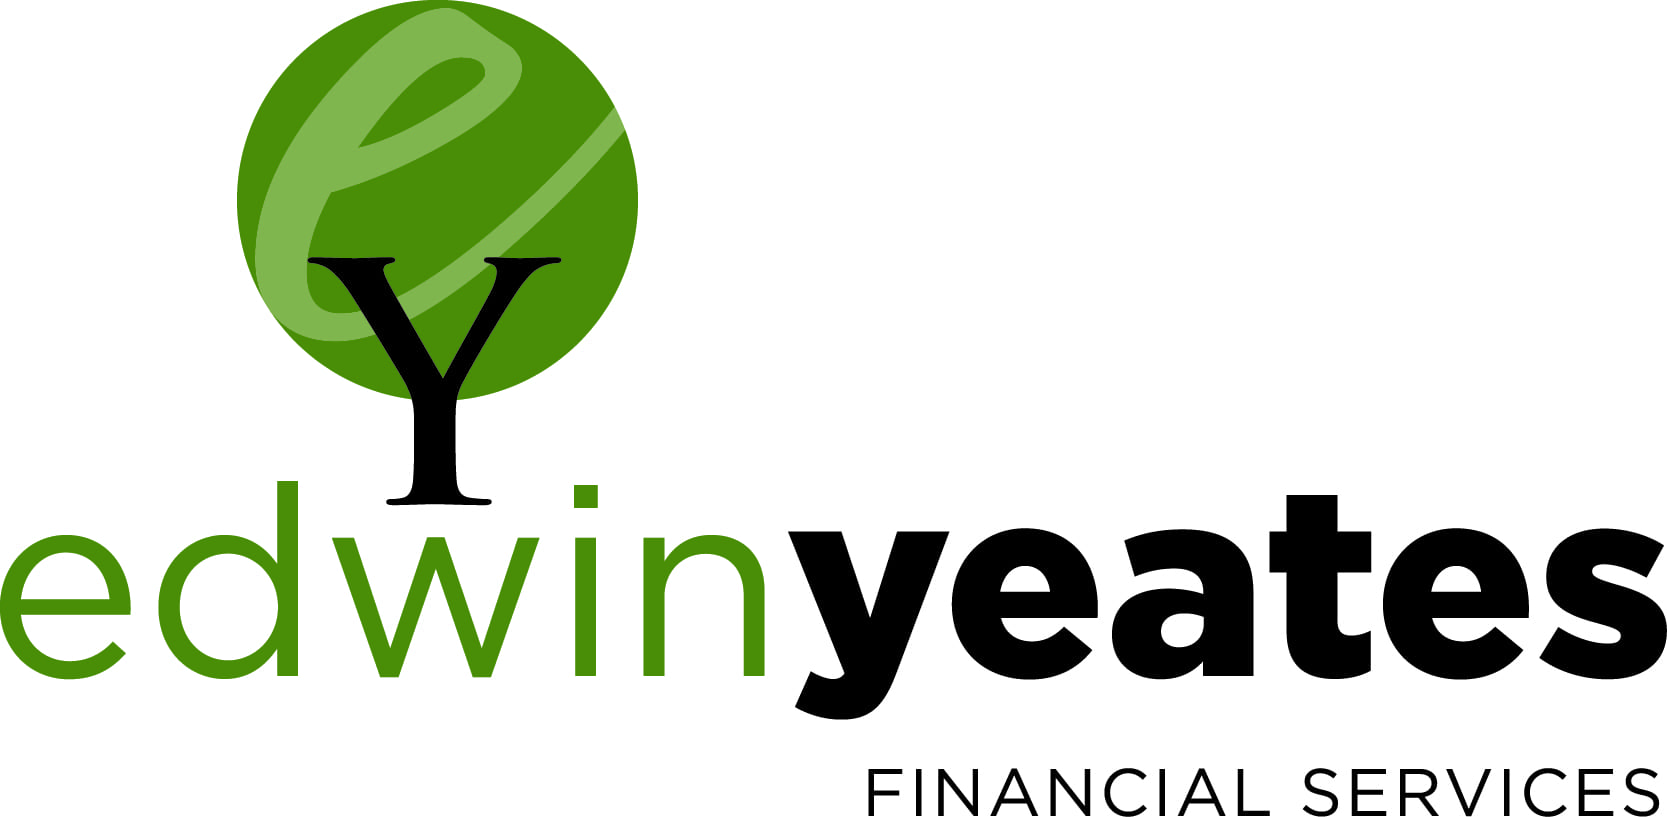 Edwin Yeates Financial Services